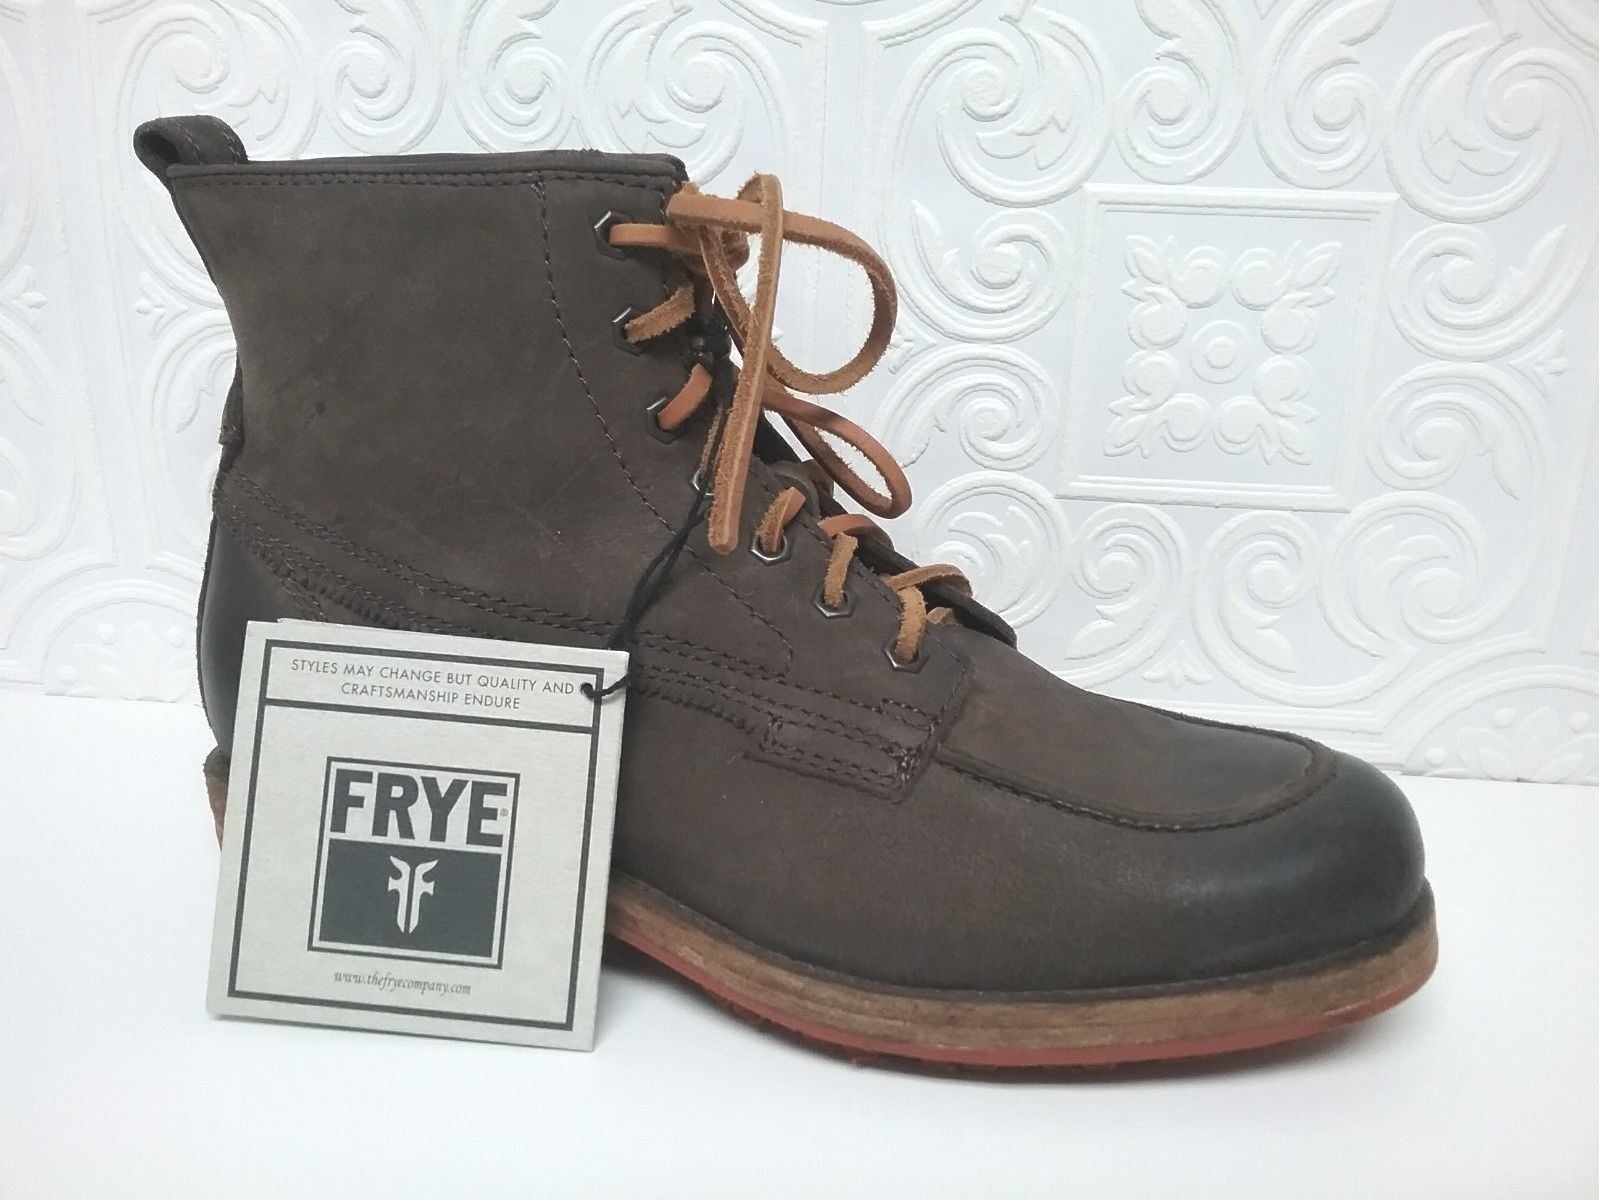 FRYE - 19523 - Men's Brown Suede Leather Boots - Size 7.5